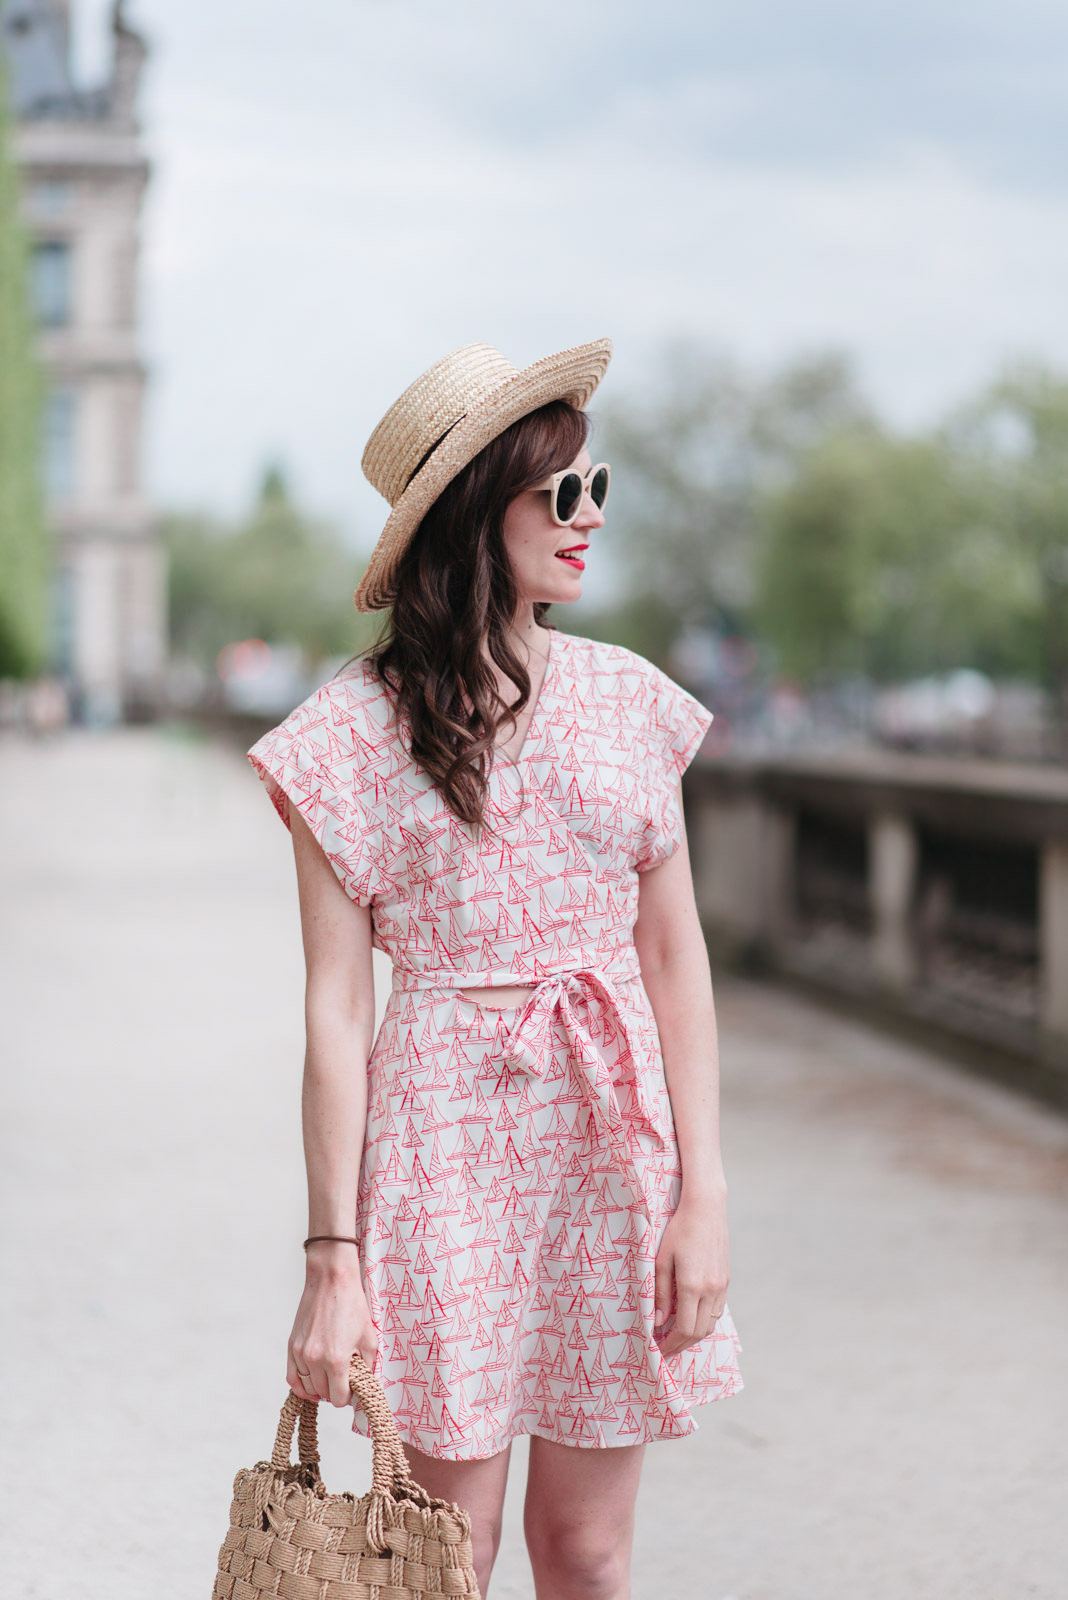 Blog-Mode-And-The-City-Looks-la-robe-a-petits-bateaux-5